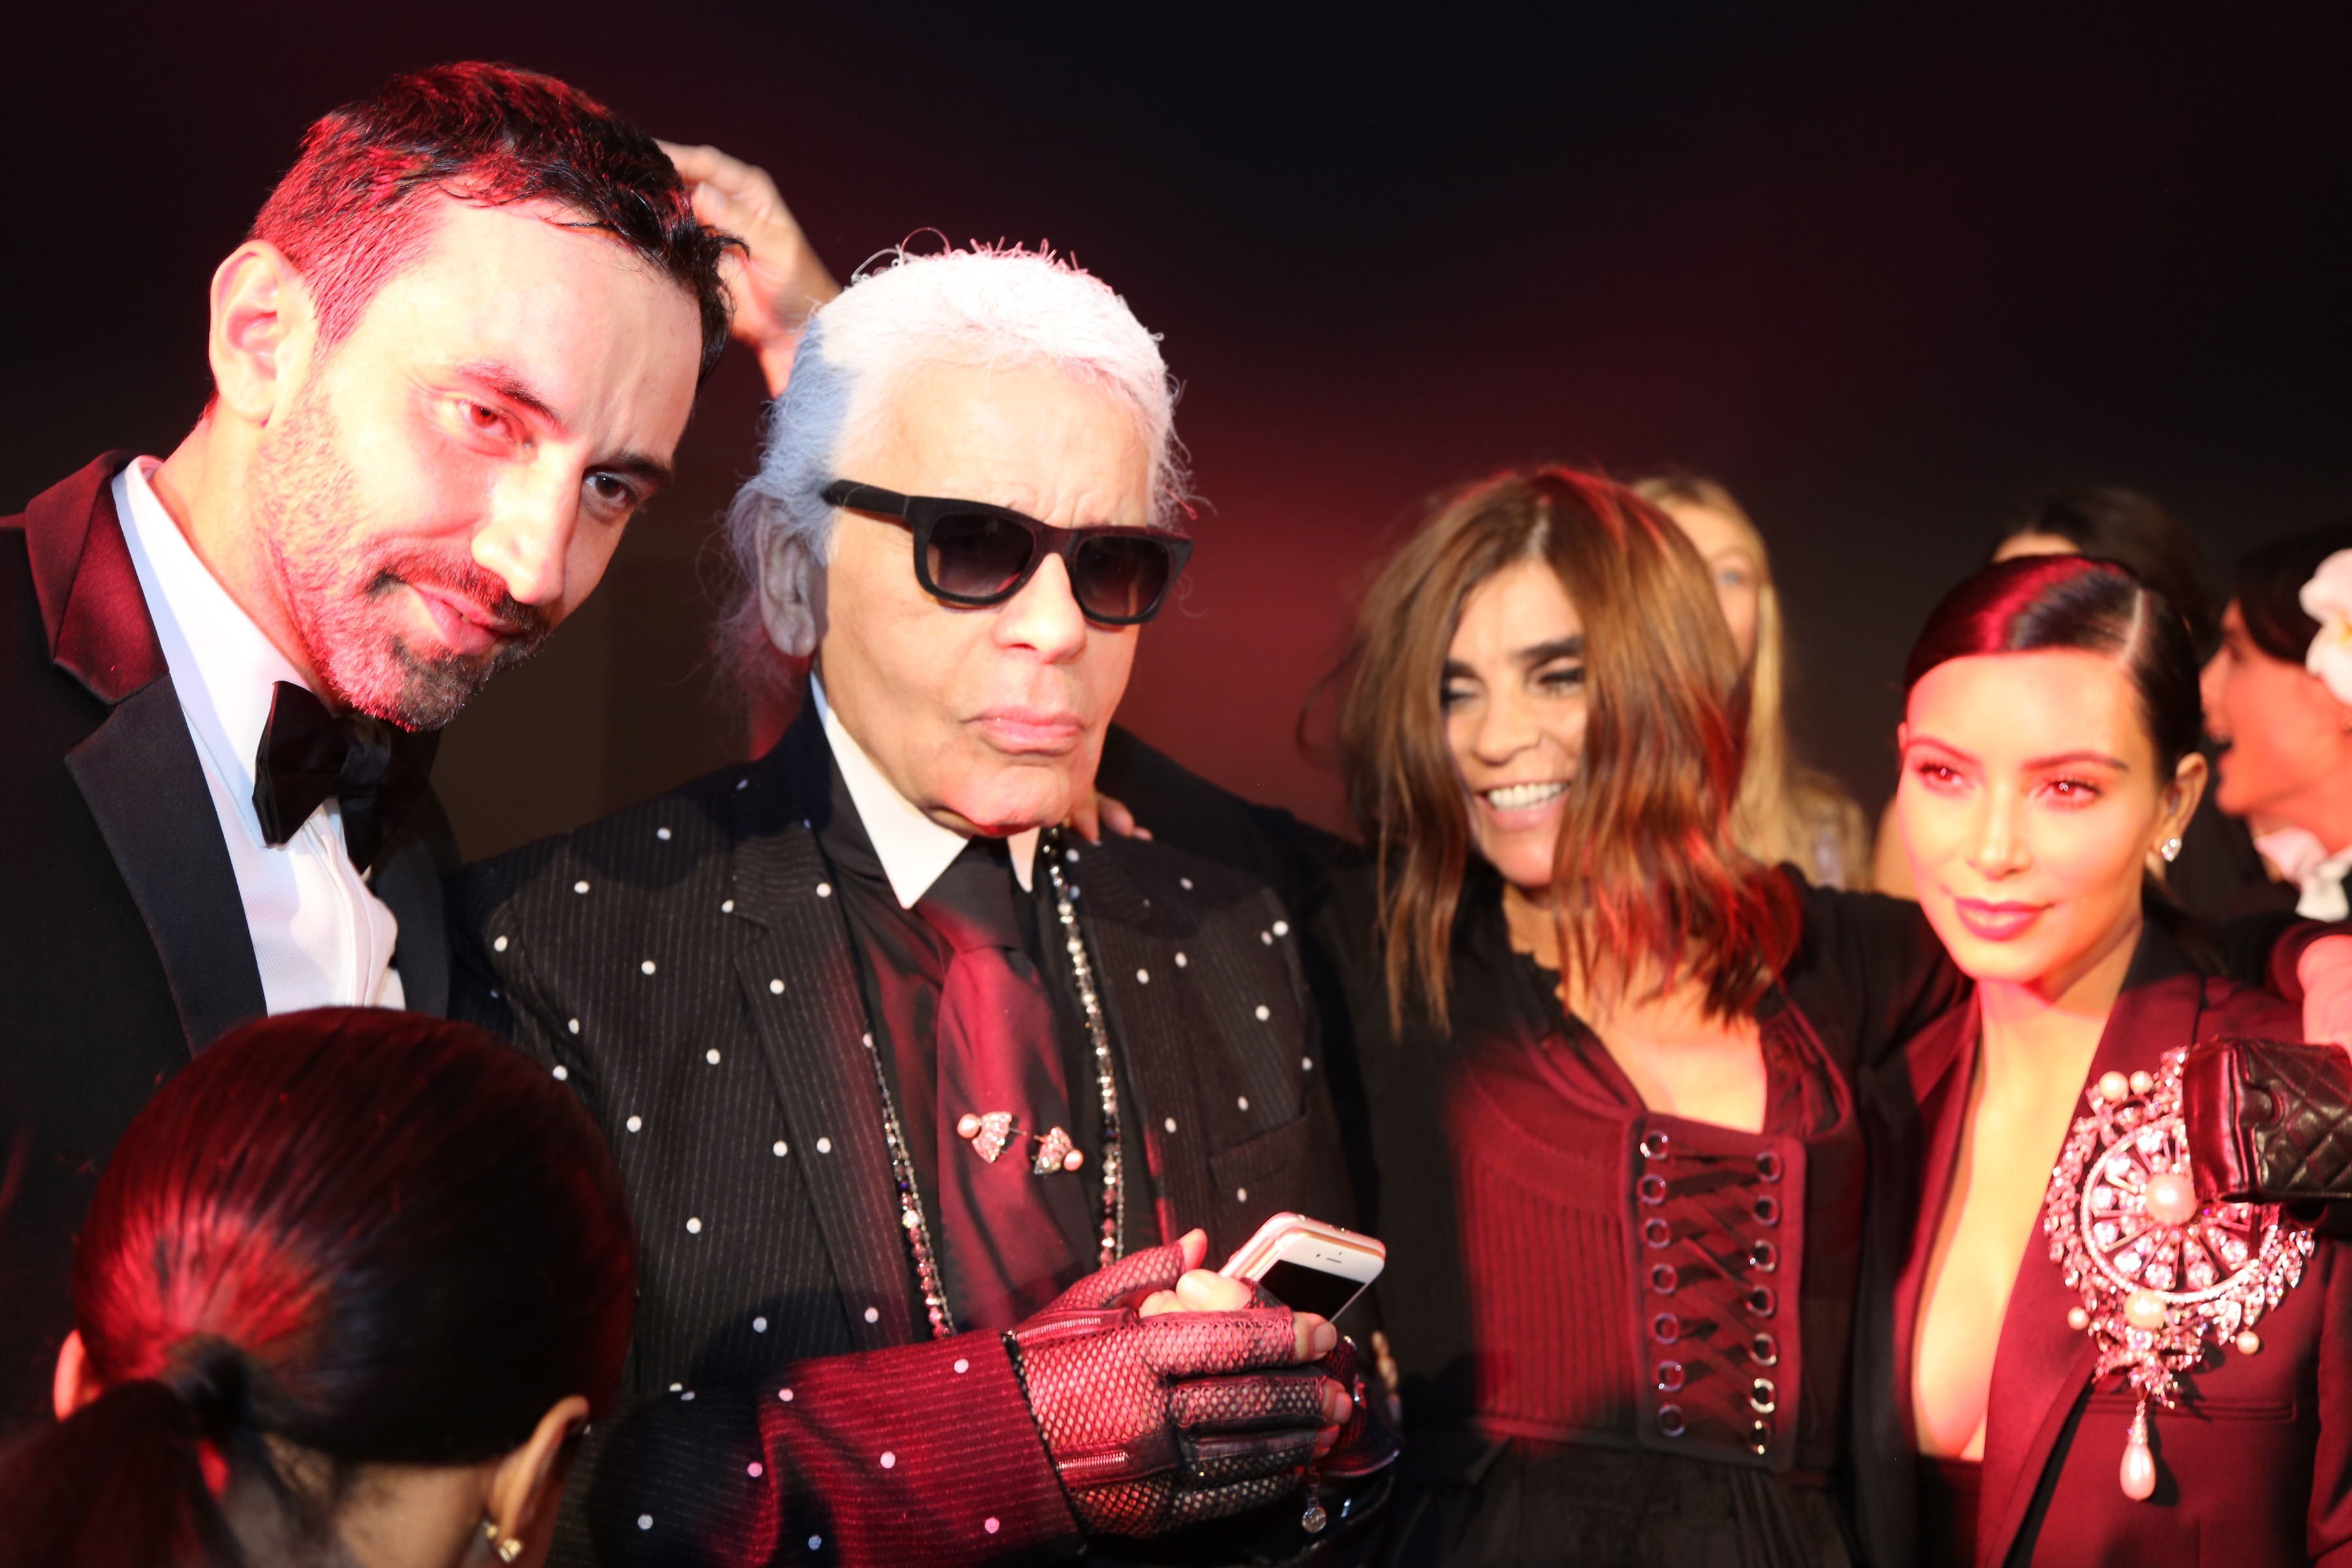 Riccardo Tisci, Karl Lagerfeld, Carine Roitfeld and Kim Kardashian West attend the CR Fashion Book Issue No.5 Launch Party hosted by Carine Roitfeld and Stephen Gan at The Peninsula Paris on Sept. 30, 2014.